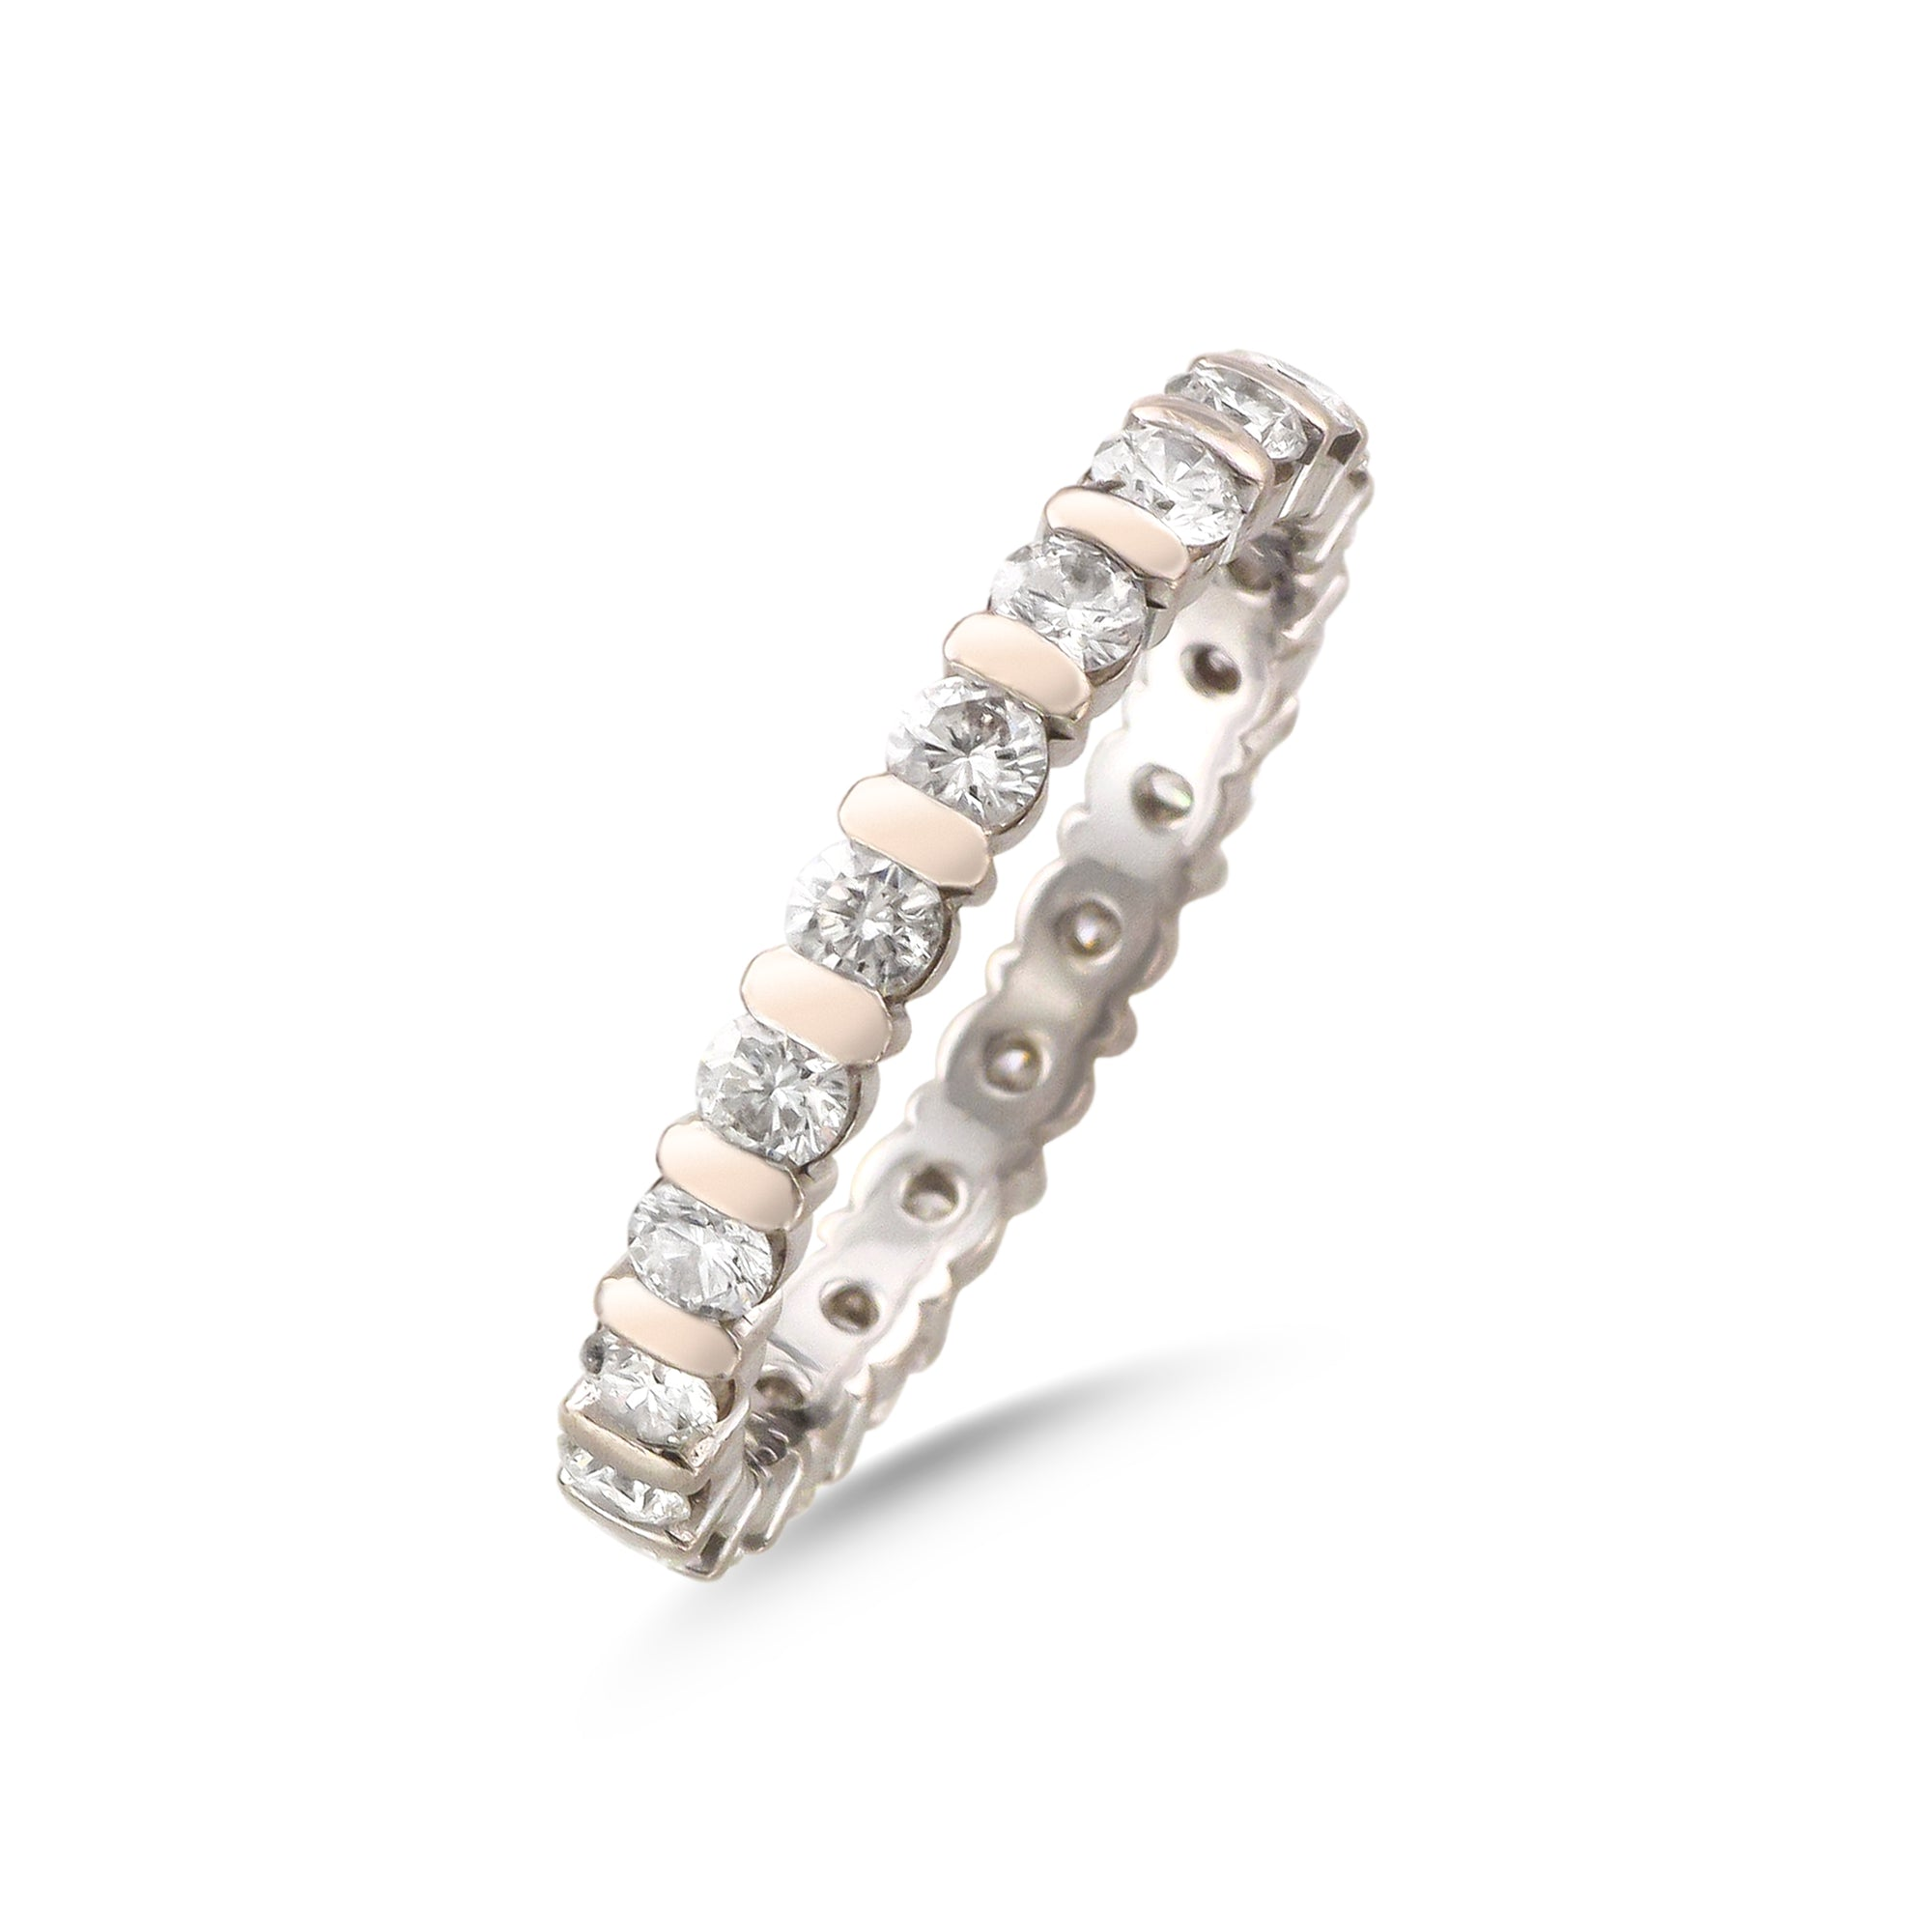 Vintage 18ct White Gold Full Eternity Diamond Ring